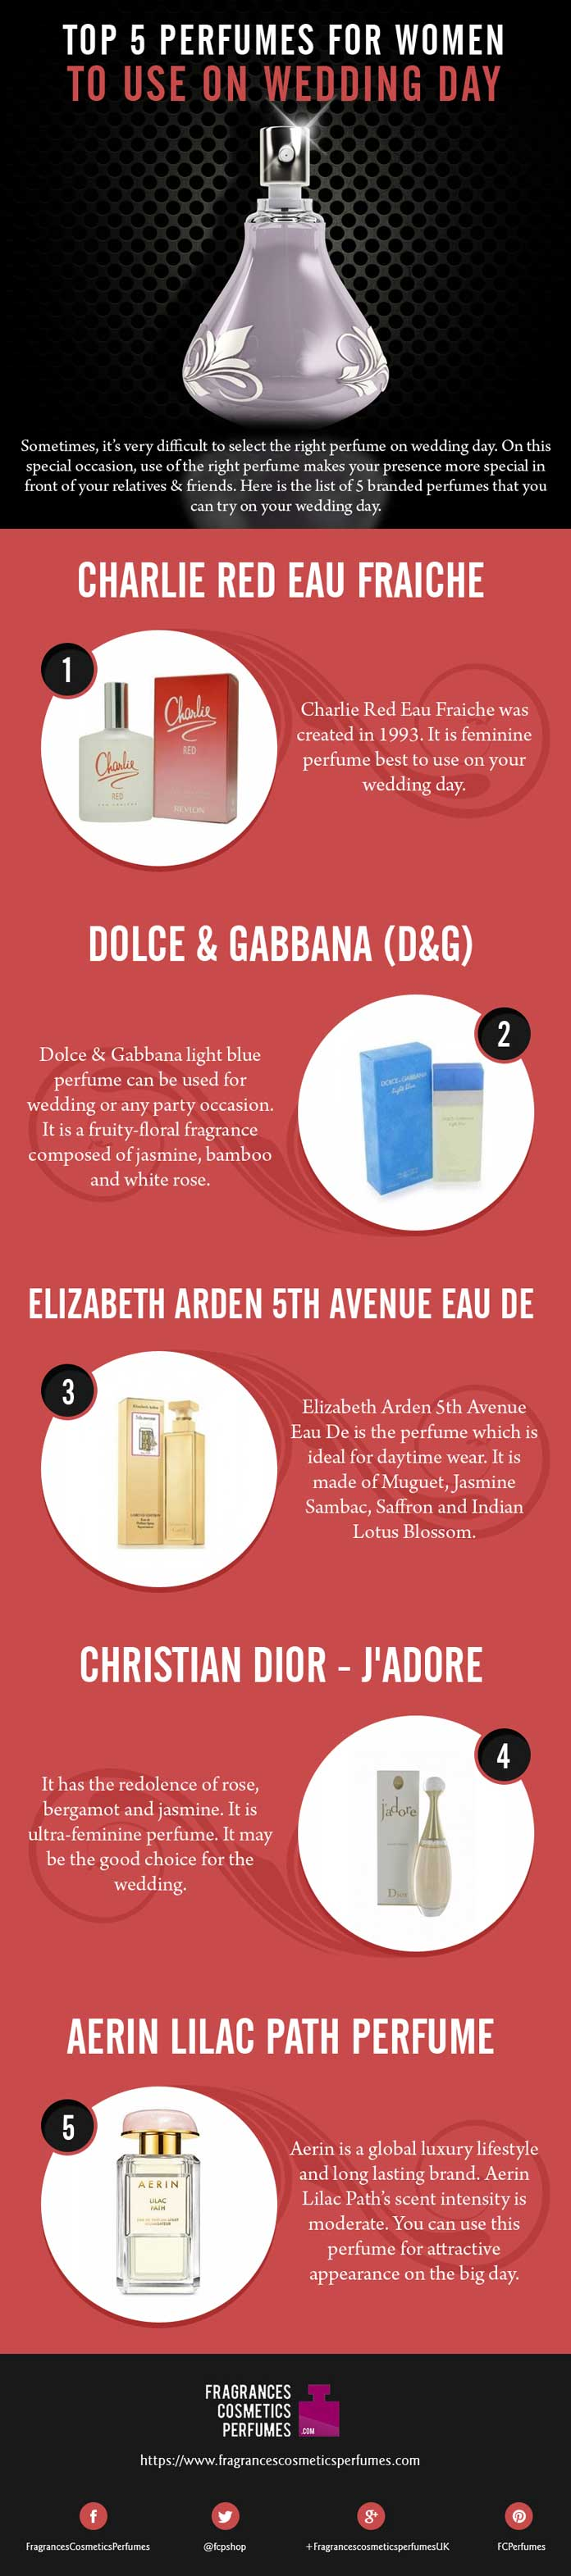 Top 5 Perfumes for women to use on wedding day